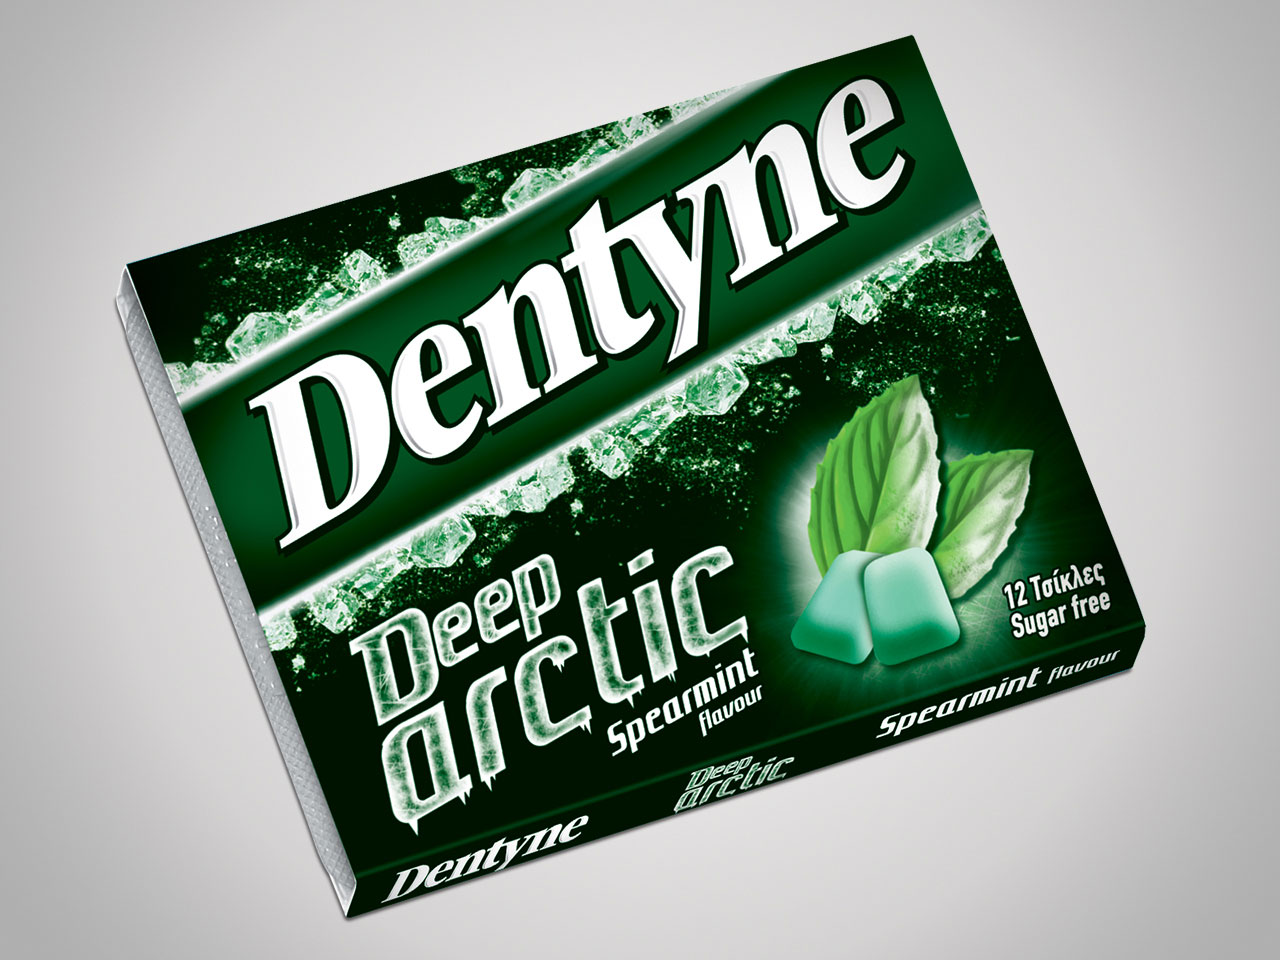 Dentyne Deep Arctic spearmint flavour